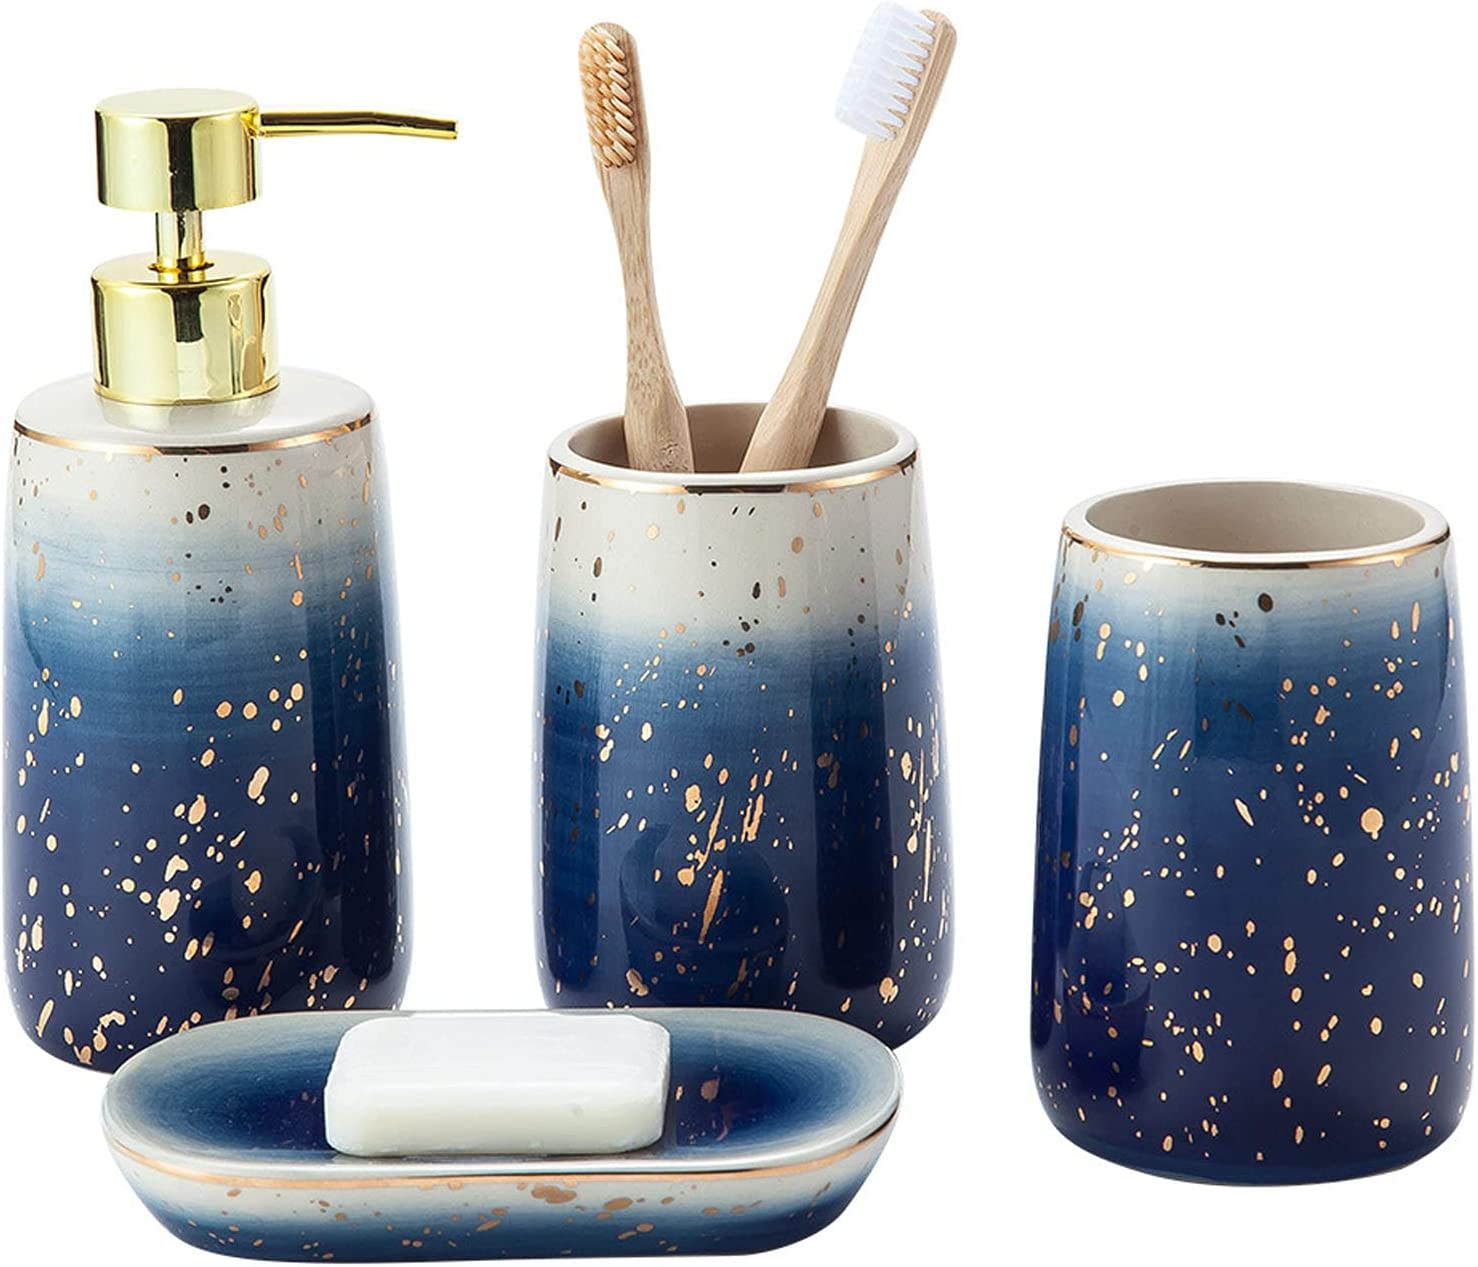 AKEFG Four Piece Bathroom Popular products Accessories Set - 4 Including Ceramic Max 85% OFF